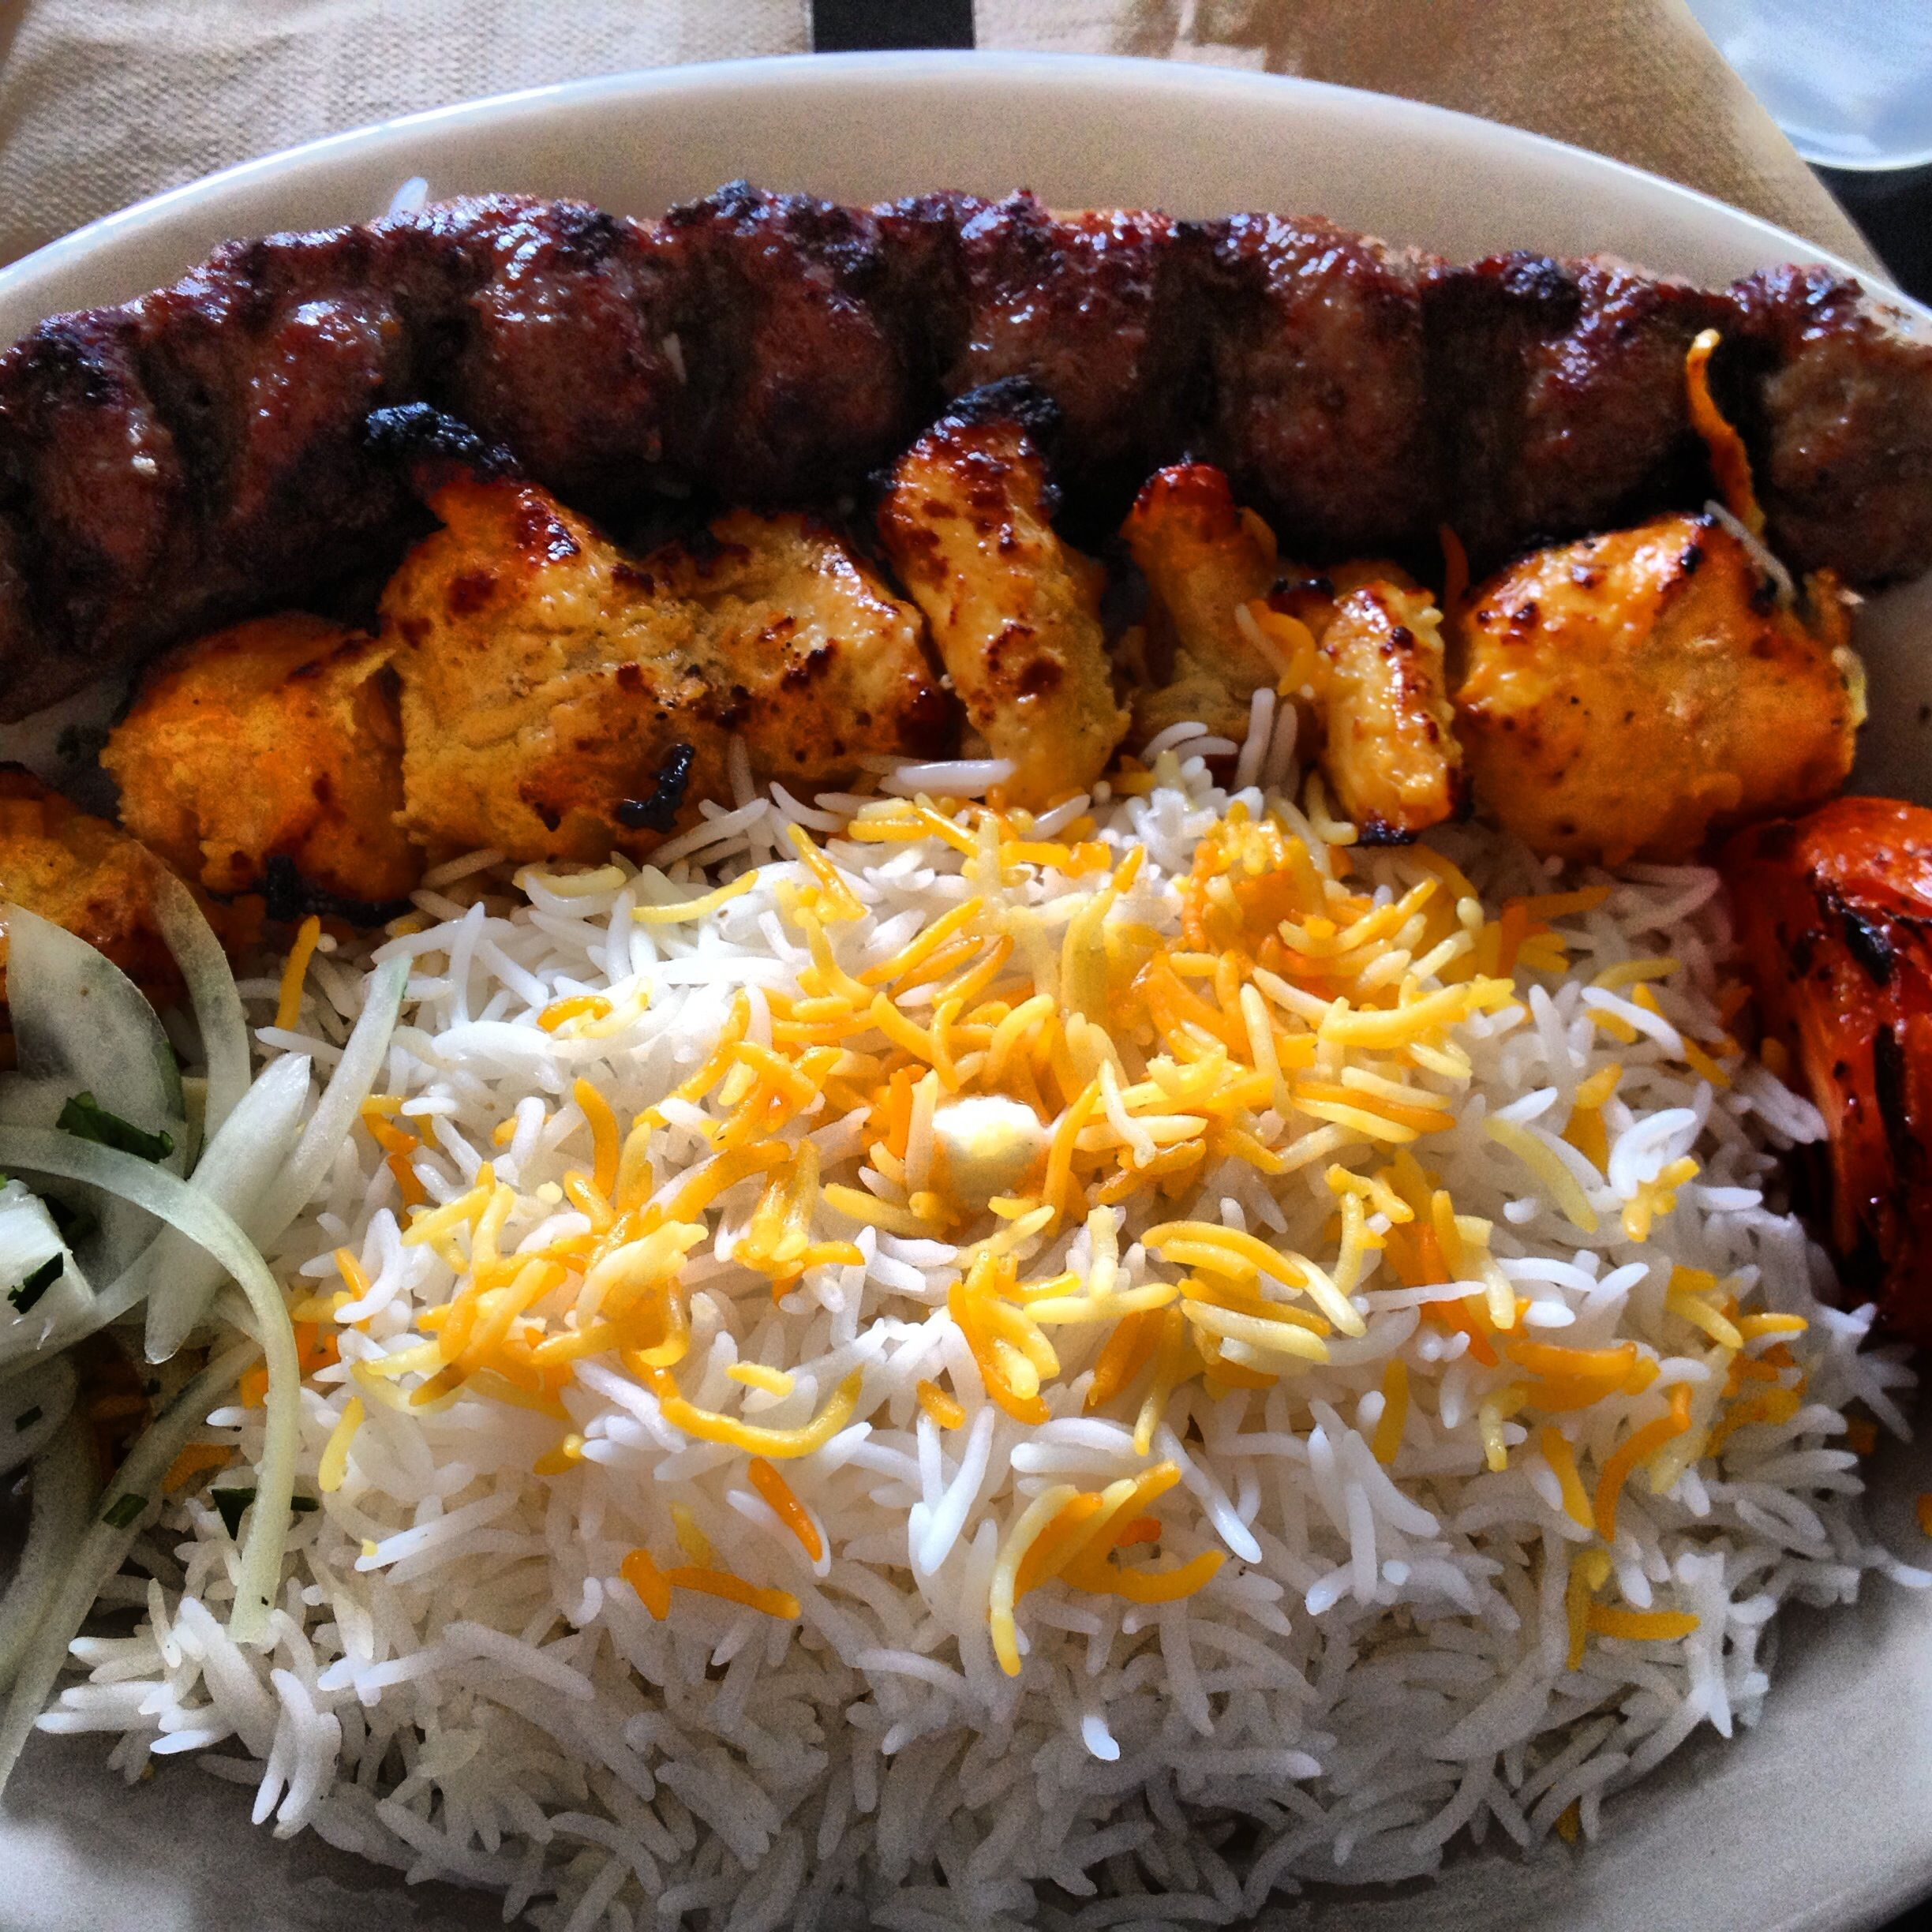 Kabob Chicken Groundbeef Rice Persian Koobideh Persianfood Joojeh Persian Food Food Ground Beef